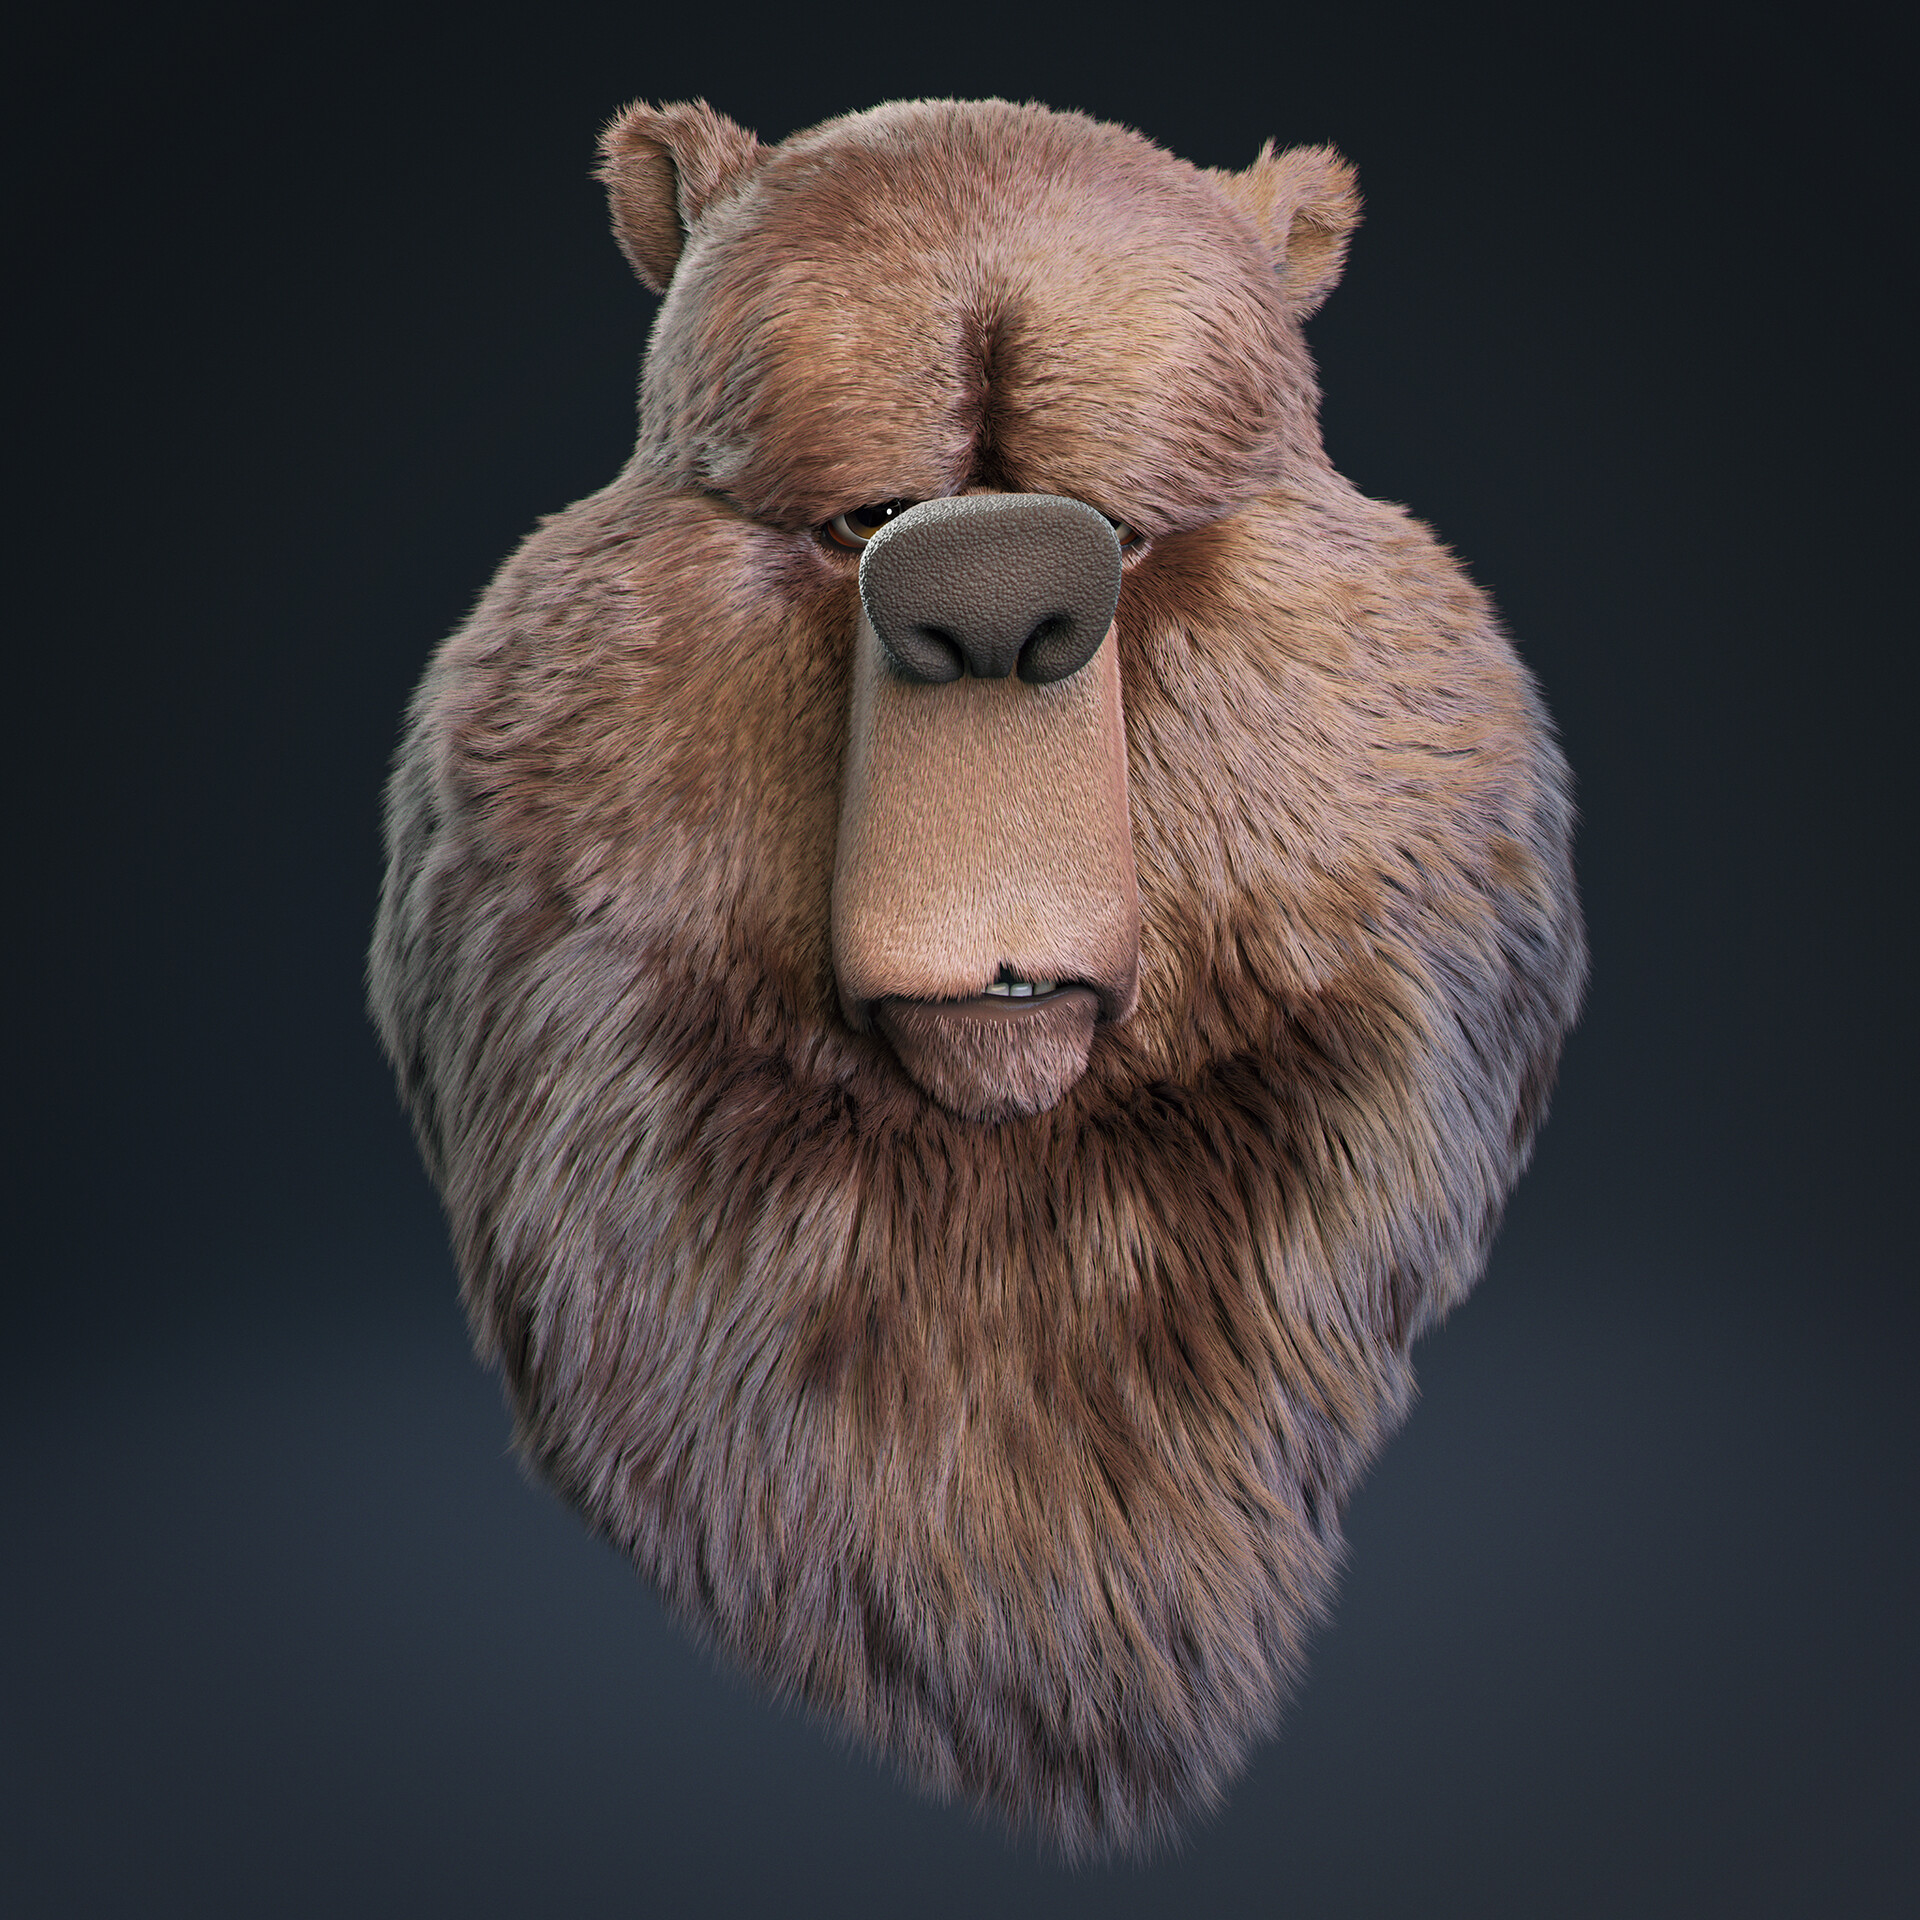 Javier diaz bear model v011 render cam 02